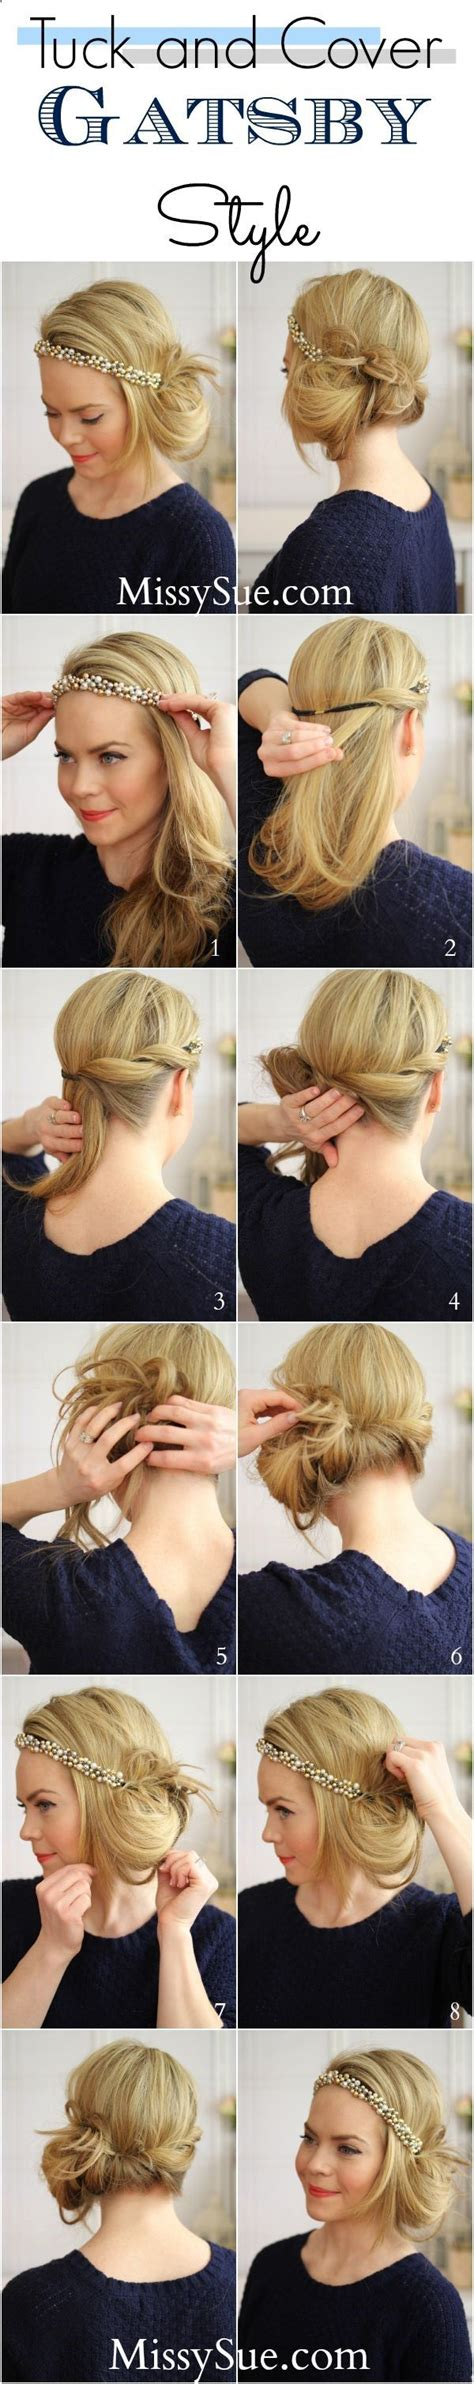 hairstyles for waitresses 17 best ideas about waitress hair on pinterest waitress